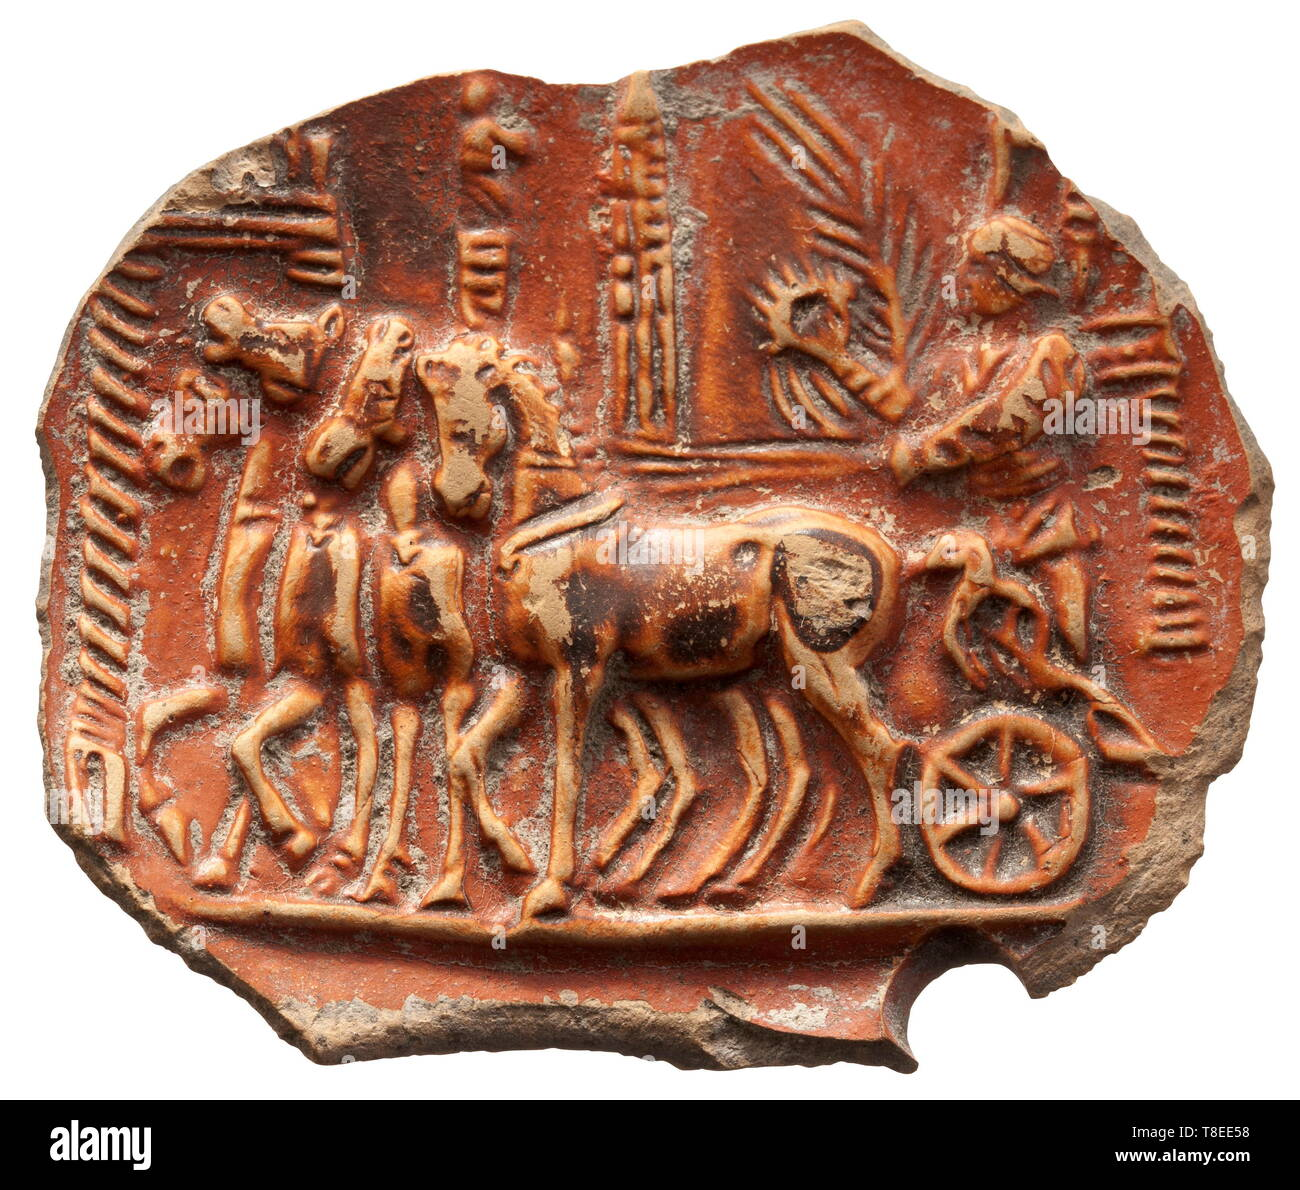 A Roman fragment of an oil lamp with charioteers in the Circus Maximus 1st/2nd century AD. Reddish glazed clay. Finely detailed scene of a victorious charioteer against the background of the Circus Maximus. Width 5.9 cm. Provenance: South German private collection, 1970s and later. historic, historical, Roman Empire, ancient world, ancient times, ancient world, Additional-Rights-Clearance-Info-Not-Available - Stock Image